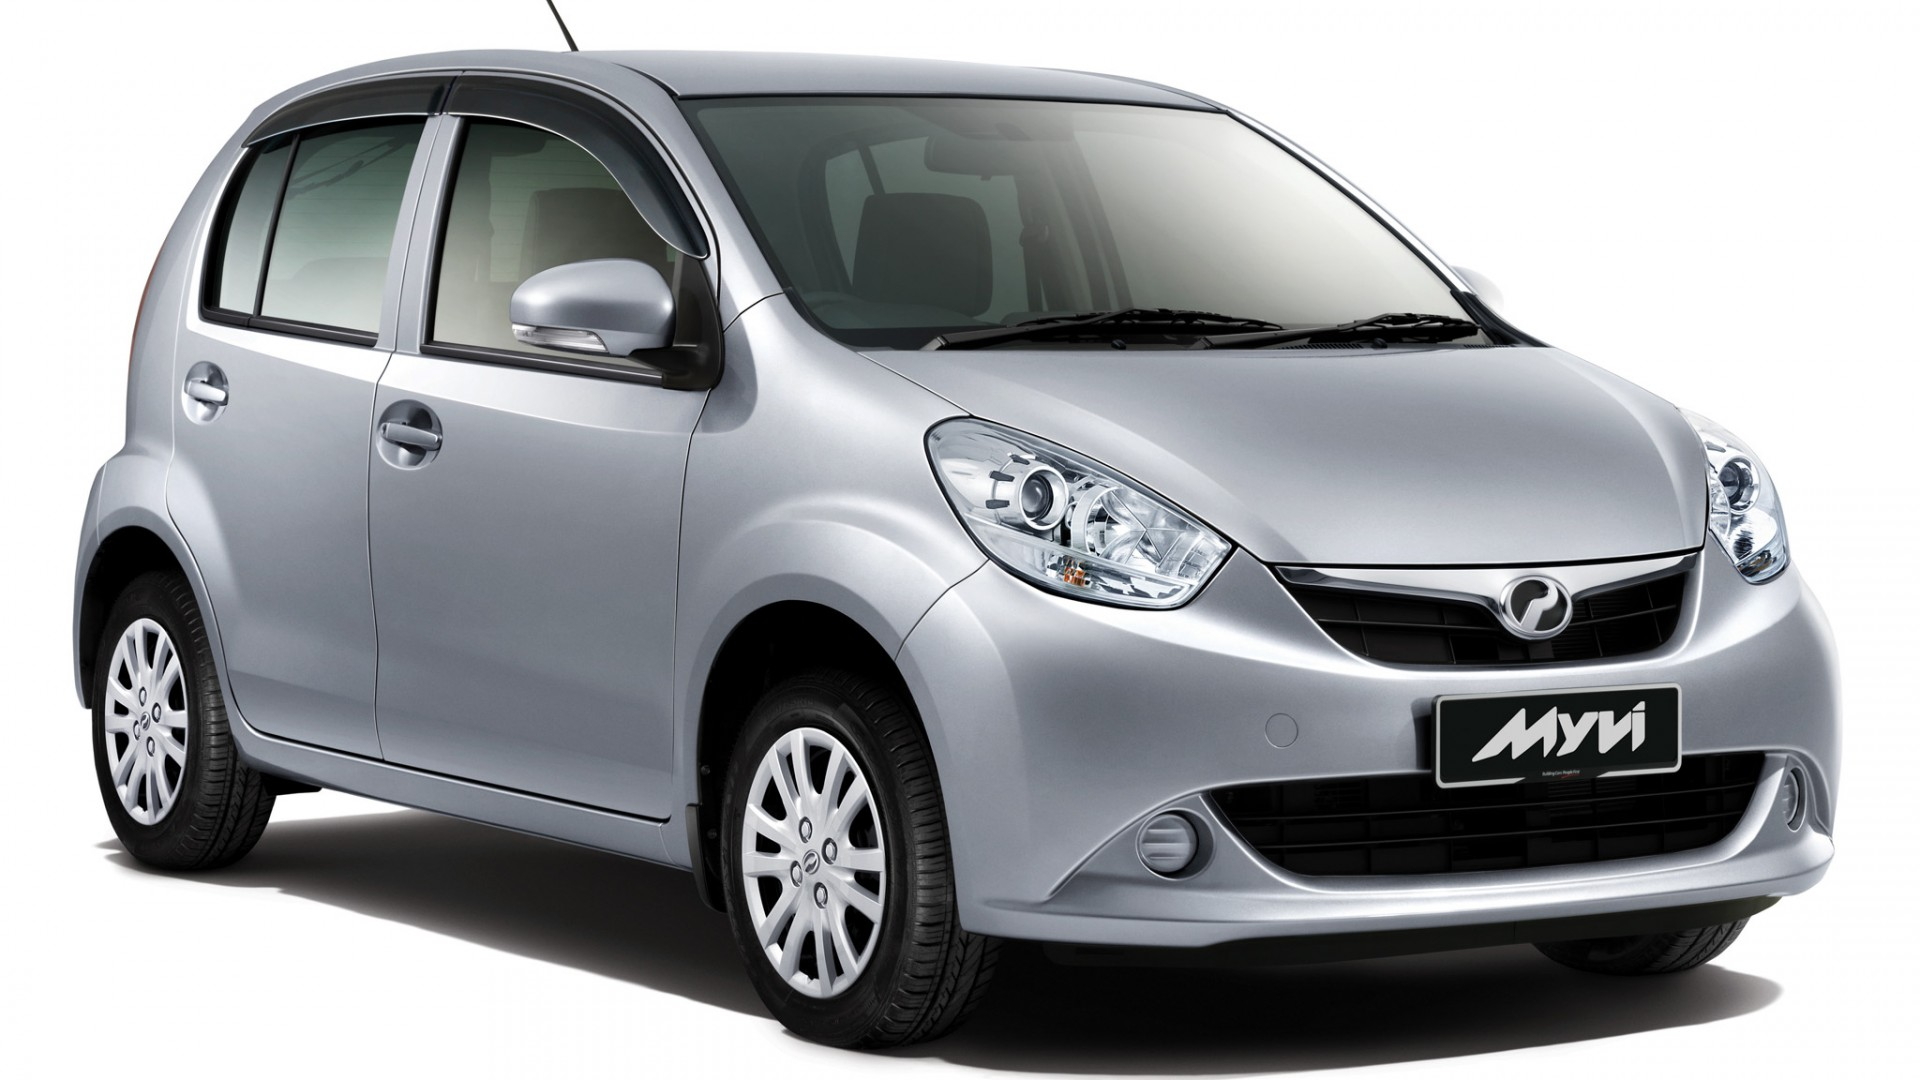 2011 Perodua MyVi Front Angle   Car  free download HD Wallpaper